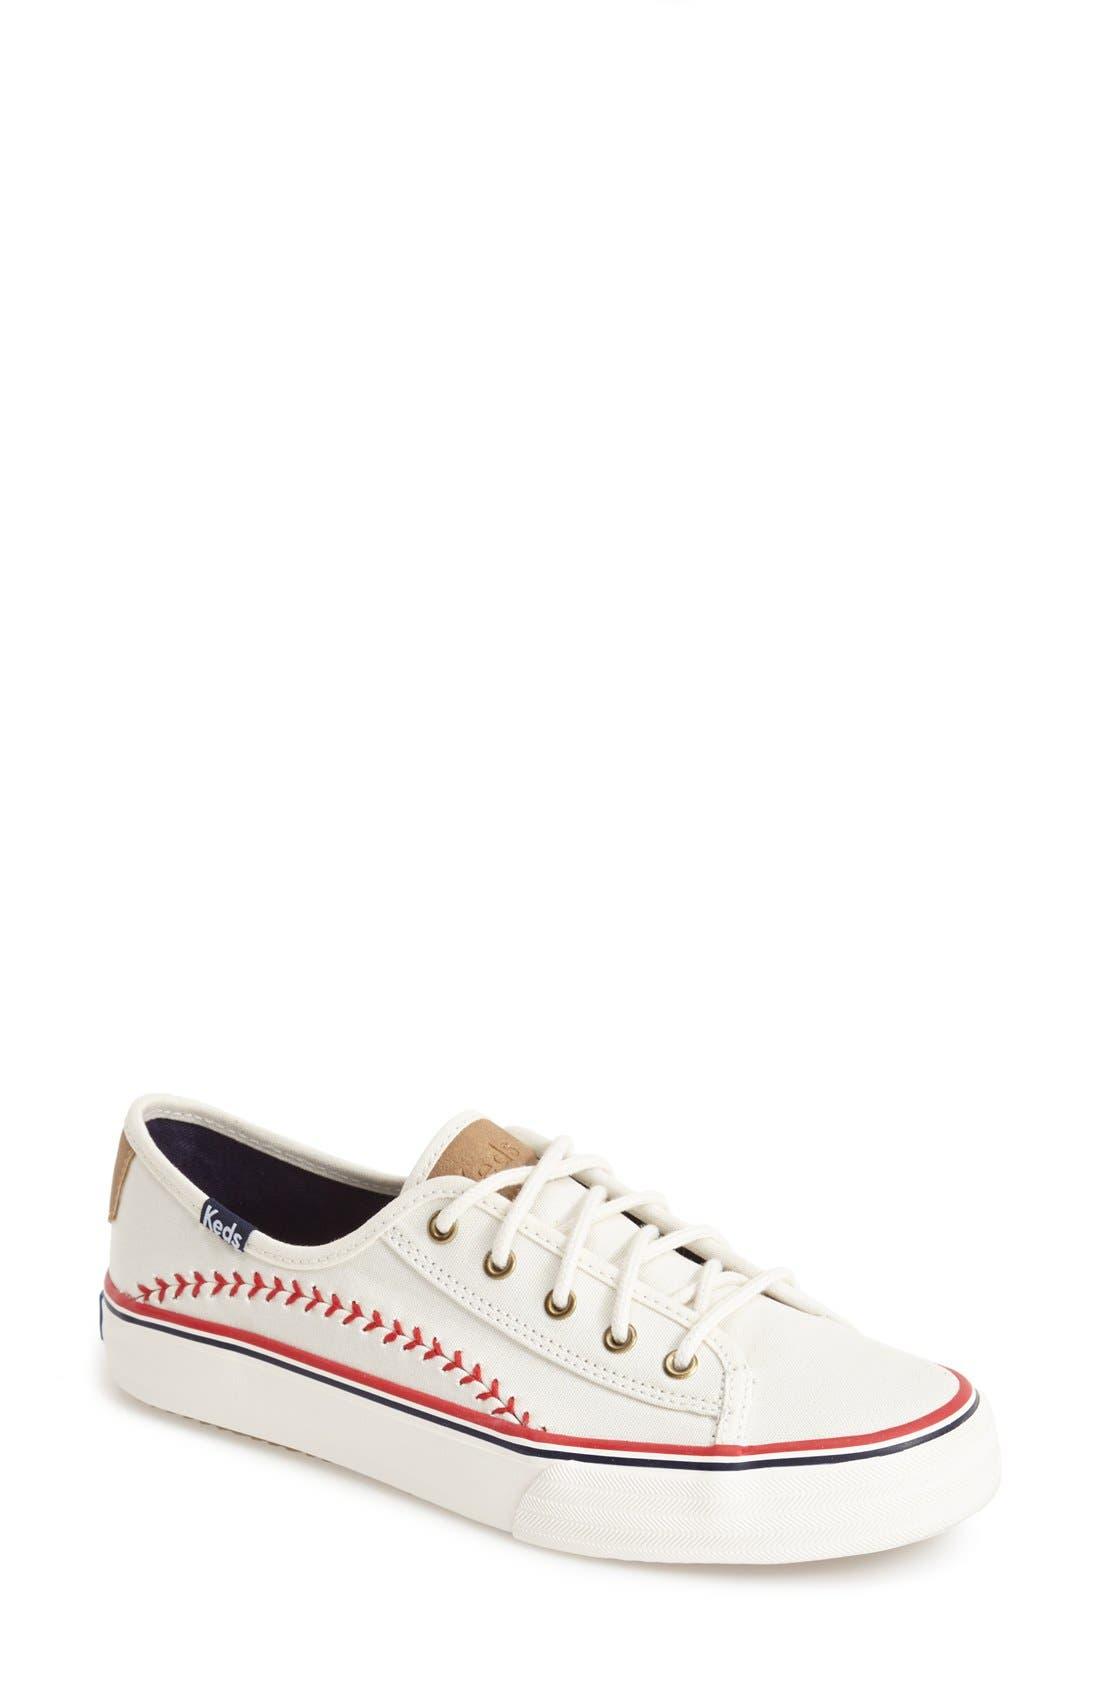 Alternate Image 1 Selected - Keds® 'Champion - Double Take' Sneaker (Women)